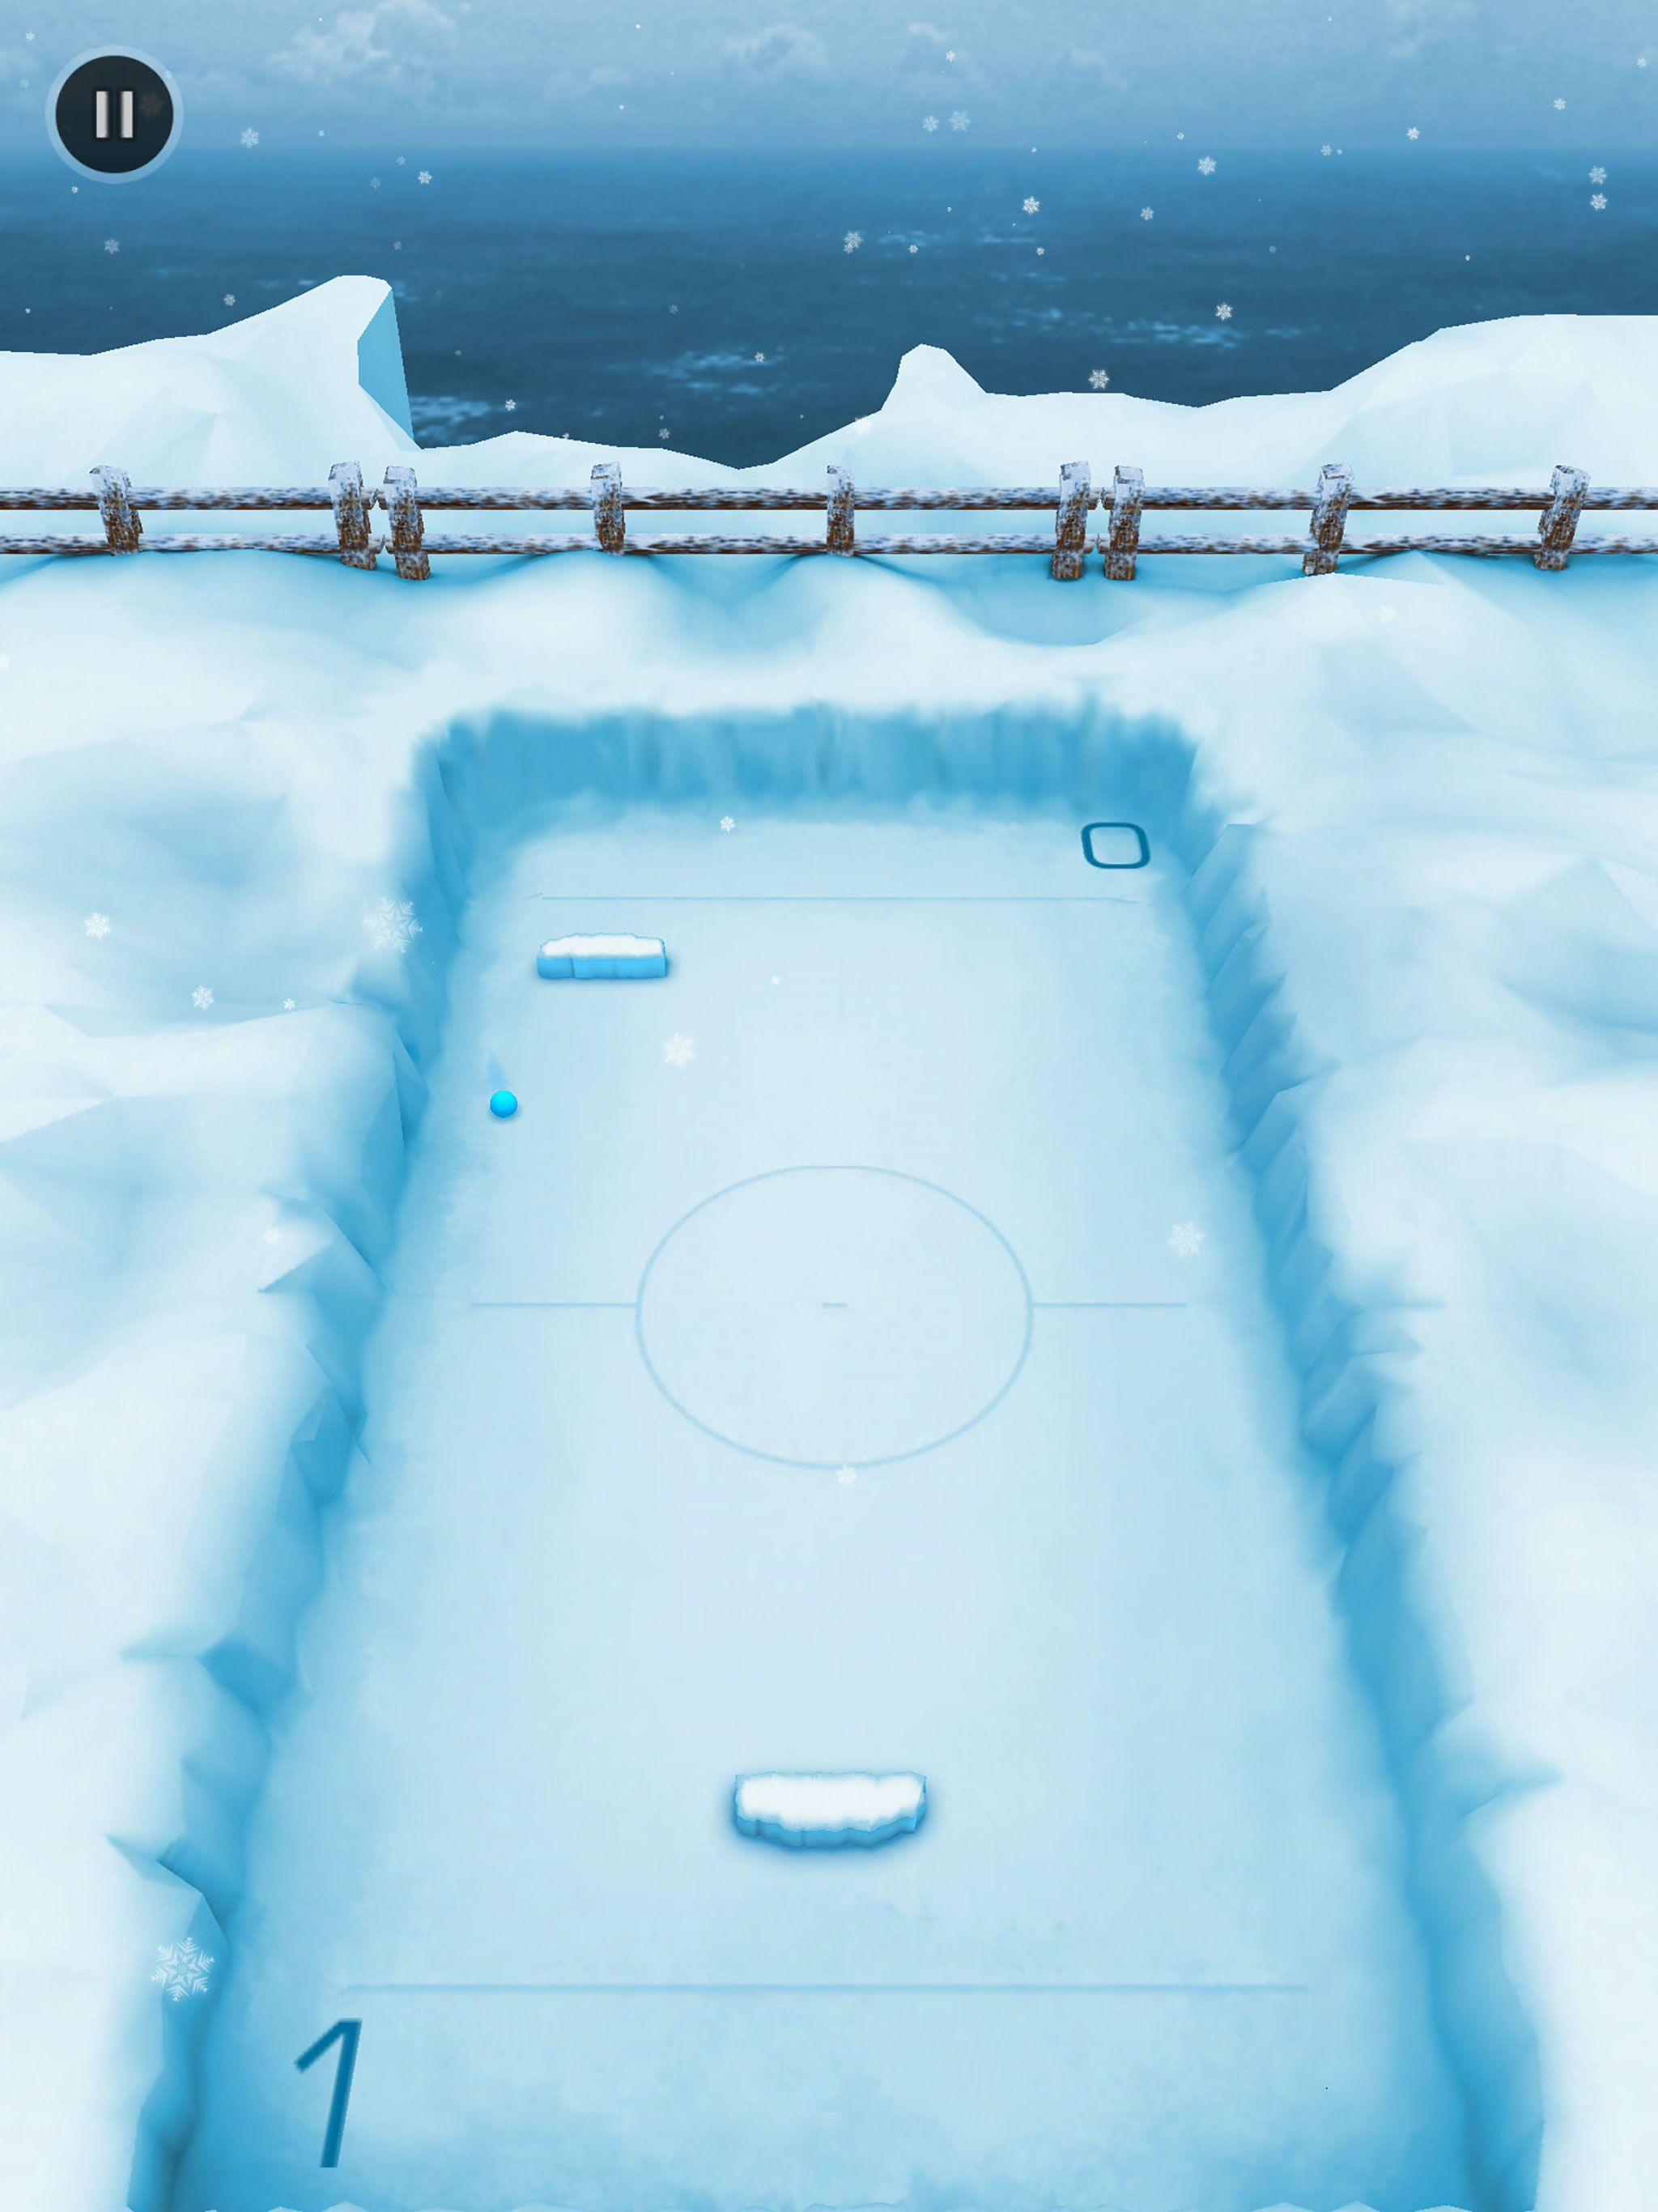 Ping Pong 3D for iPhone and Android by EivaaGames. FREE